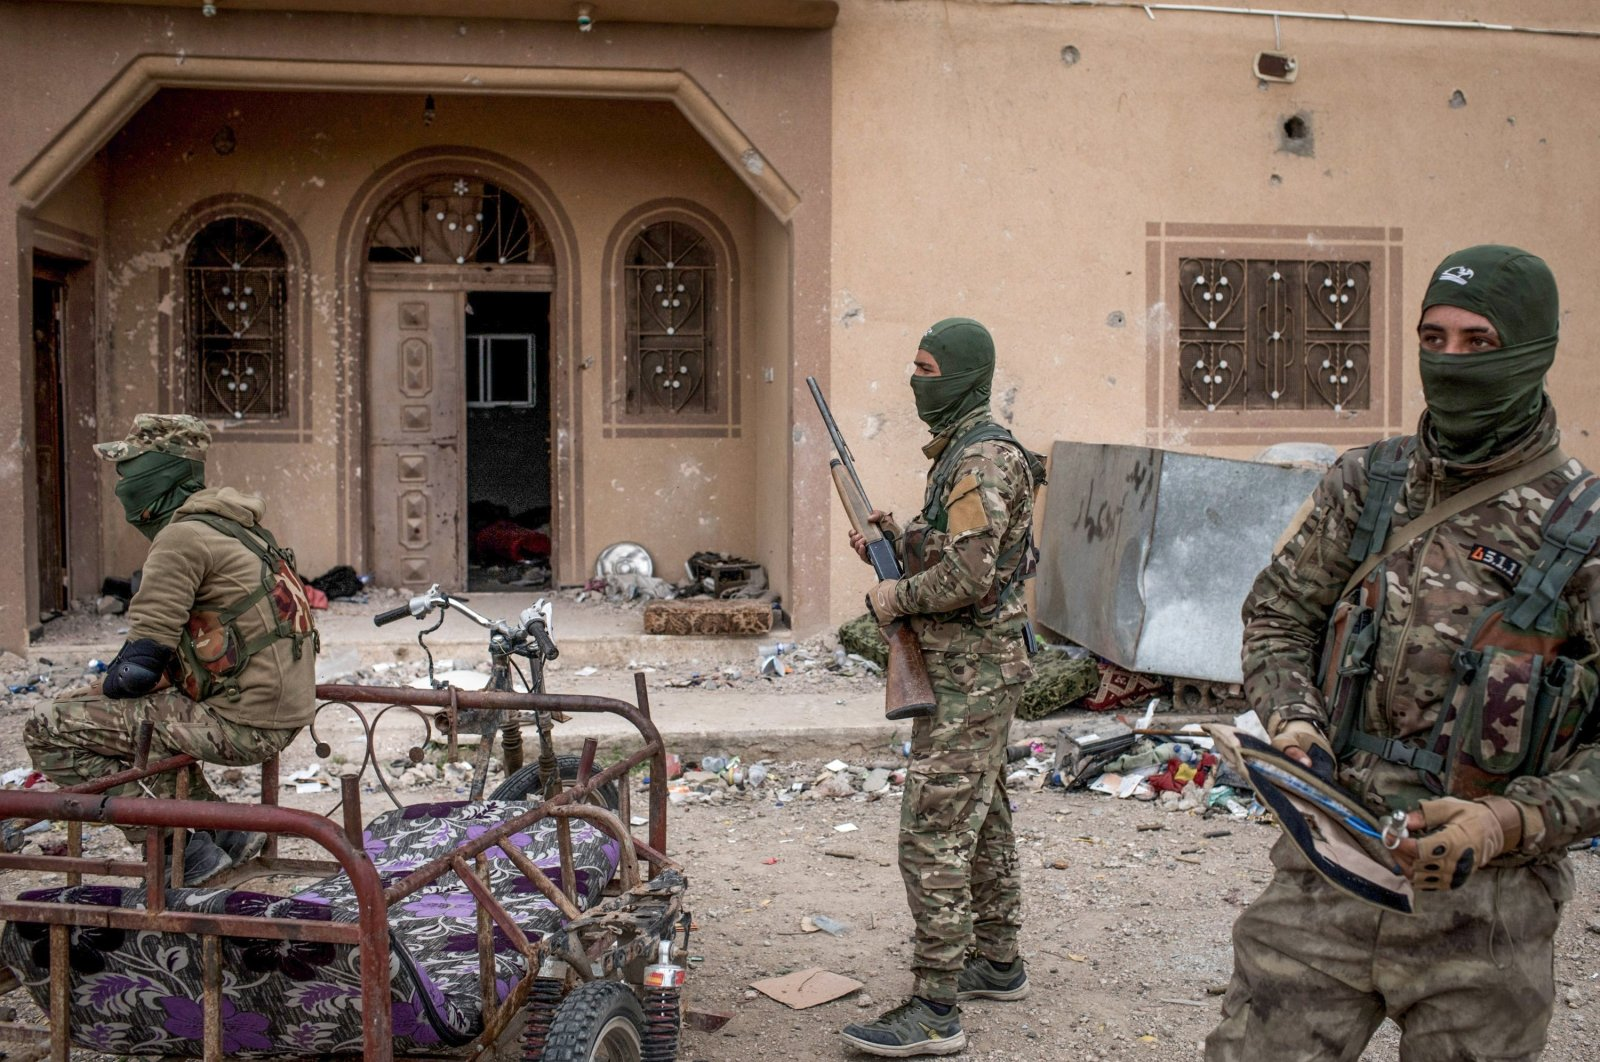 YPG/PKK terrorists are seen in front of a building in Baghouz, Syria, on March 24, 2019. (Photo by Chris McGrath/Getty Images)